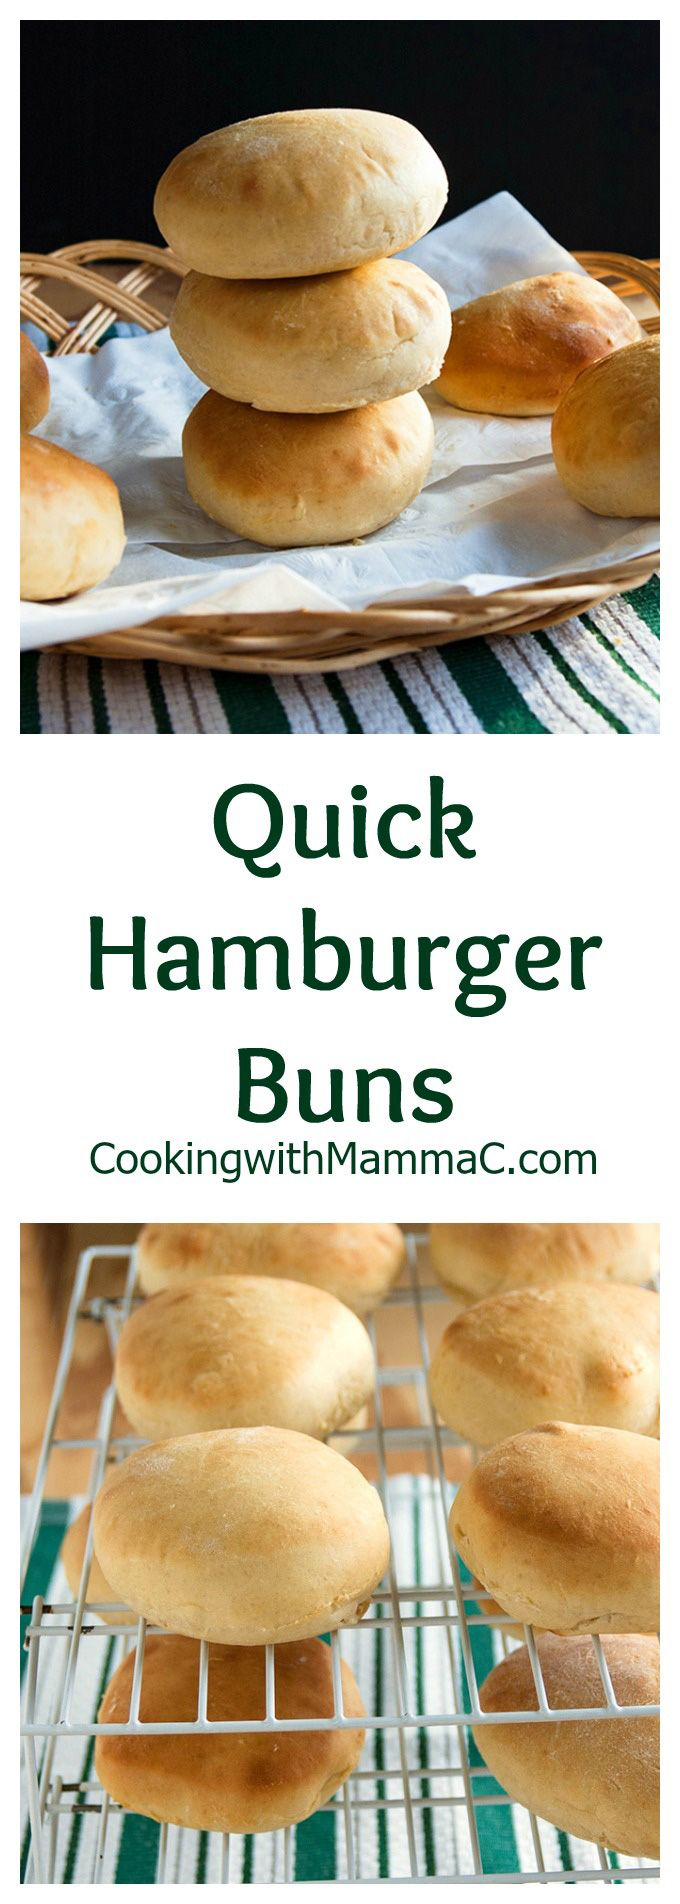 Make these Quick Hamburger Buns from scratch and elevate your burgers to a whole new level! No fancy equipment required.